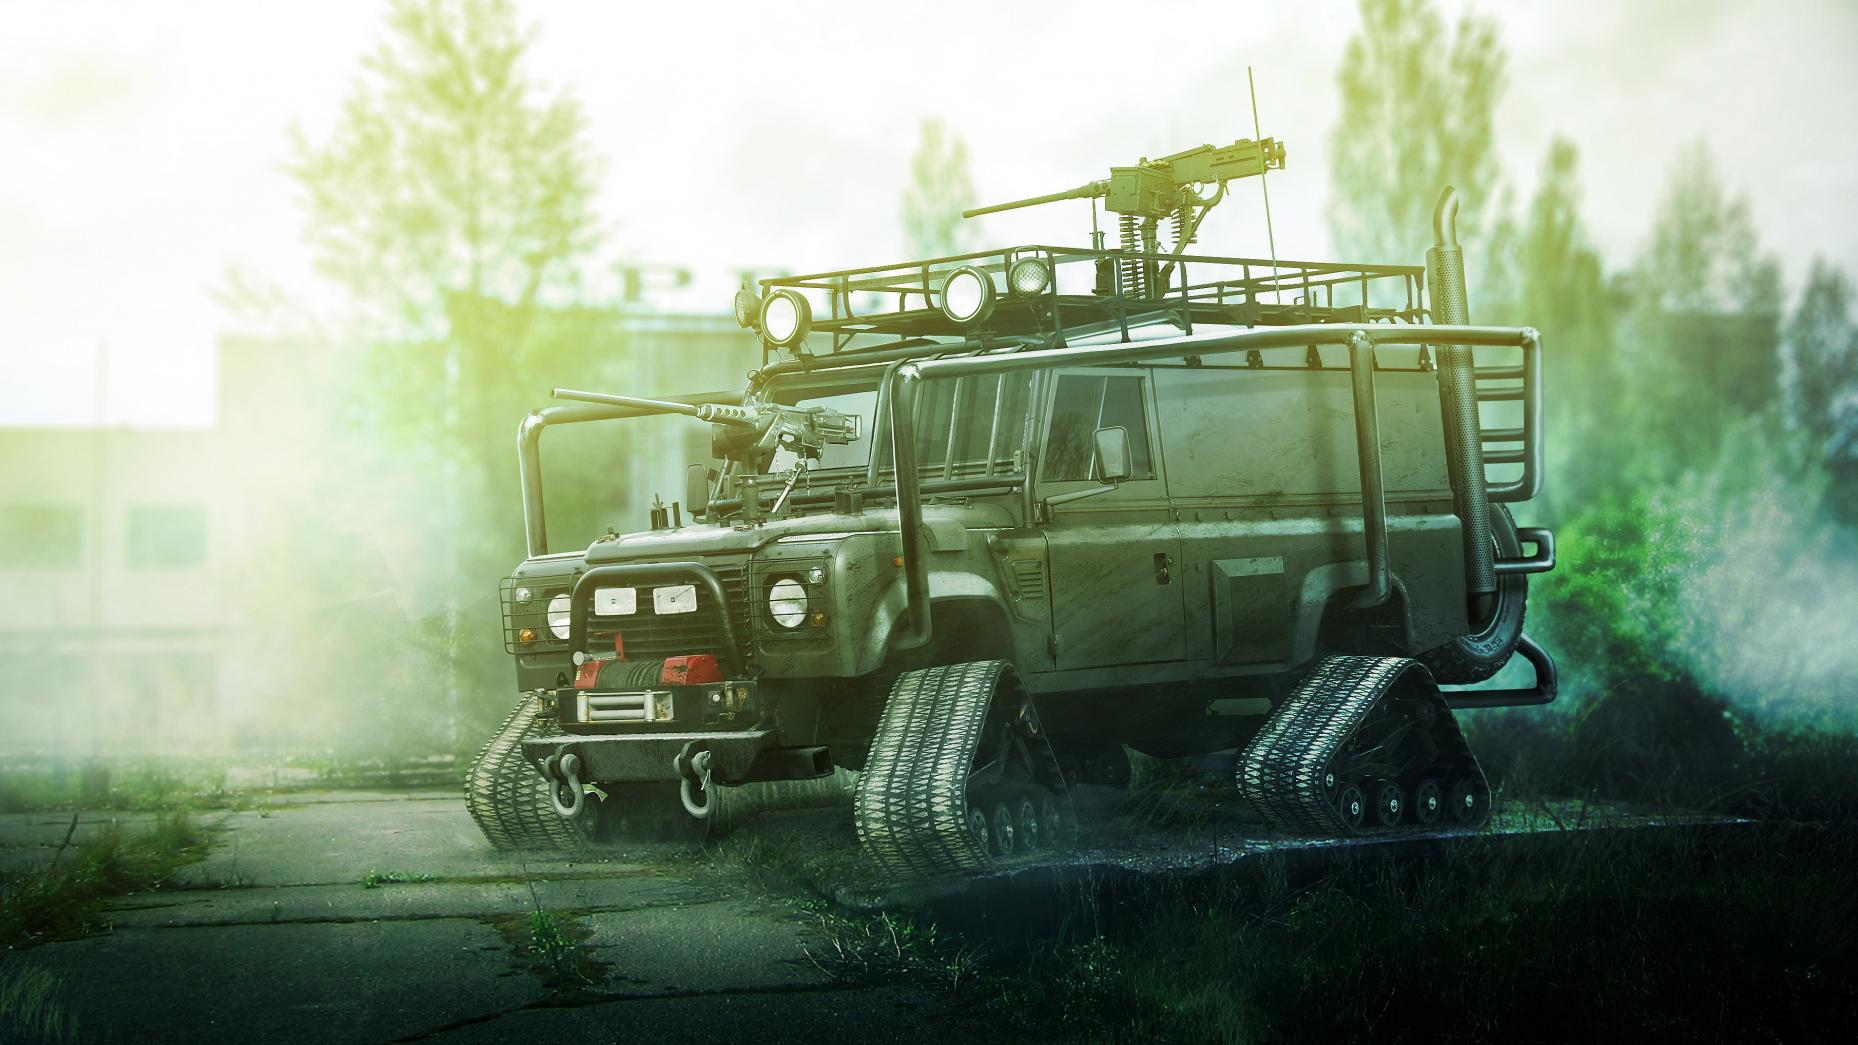 5. Land Rover Defender